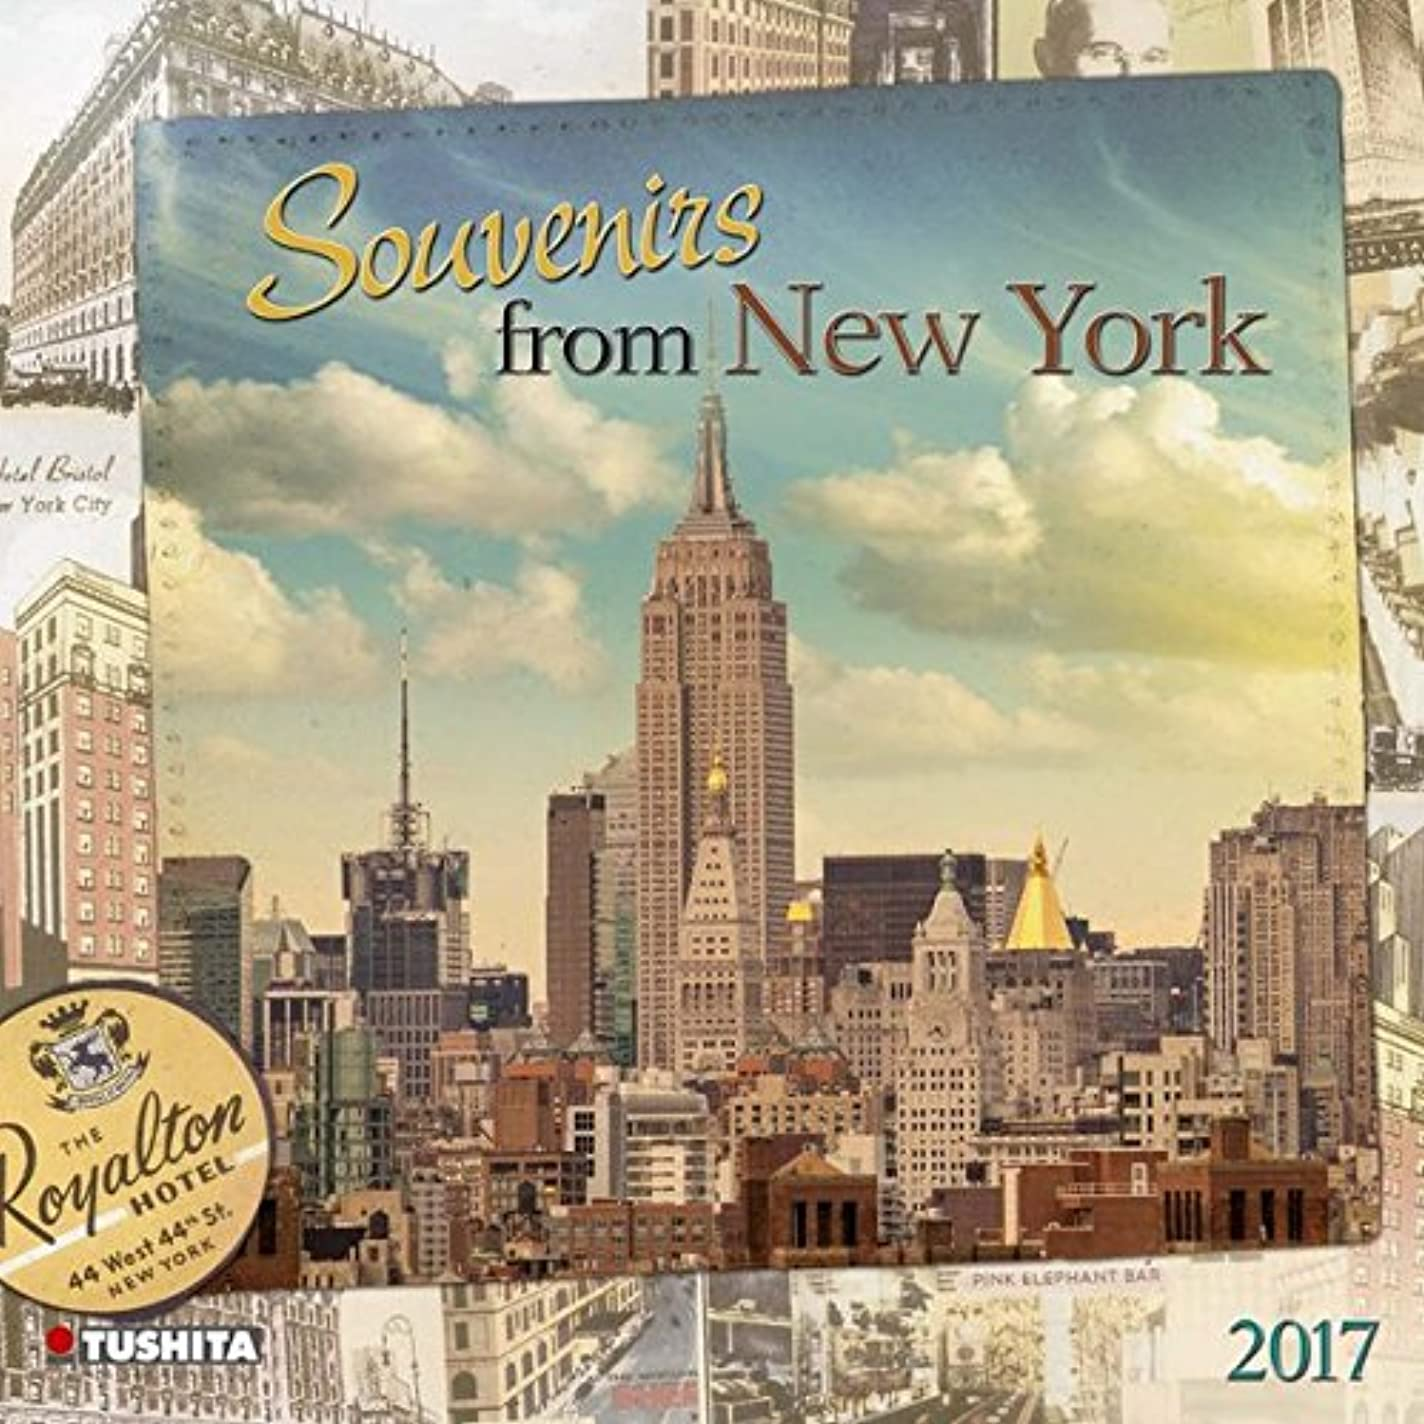 肝刈り取る略すSouvenirs from New York 2017 (Cities at Twilight)